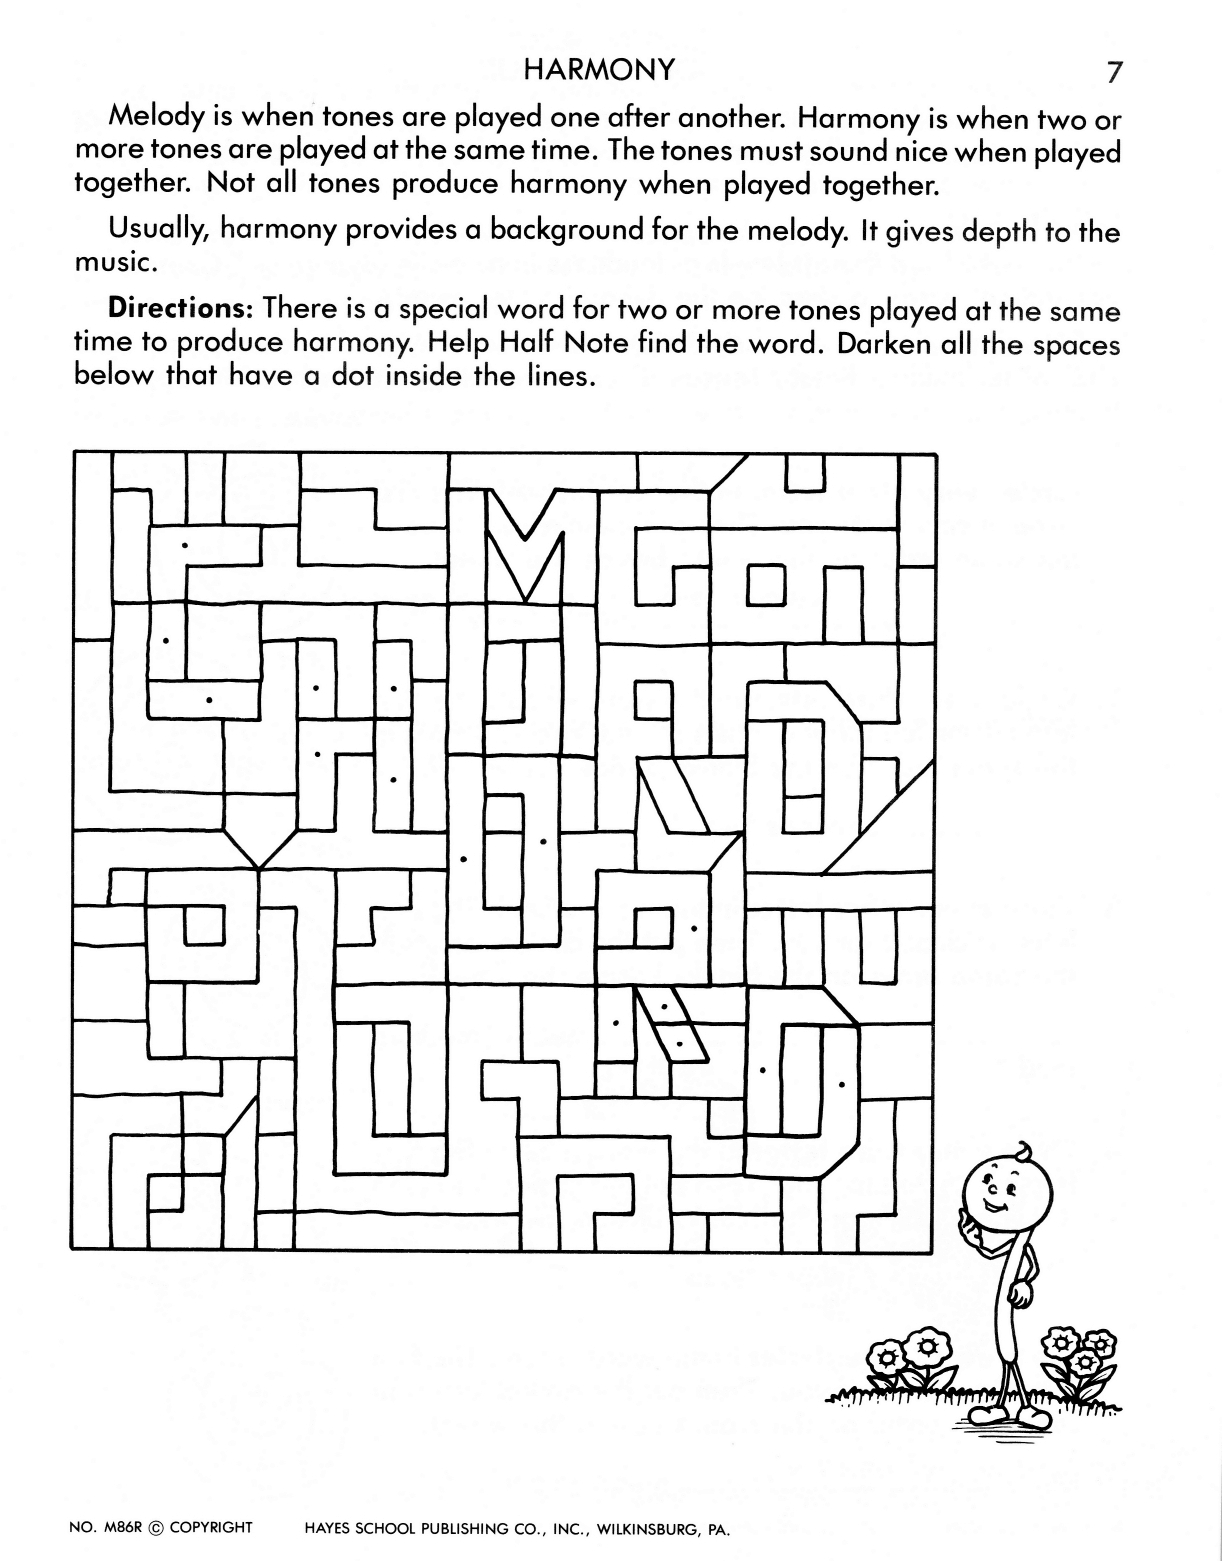 Worksheet Page 7